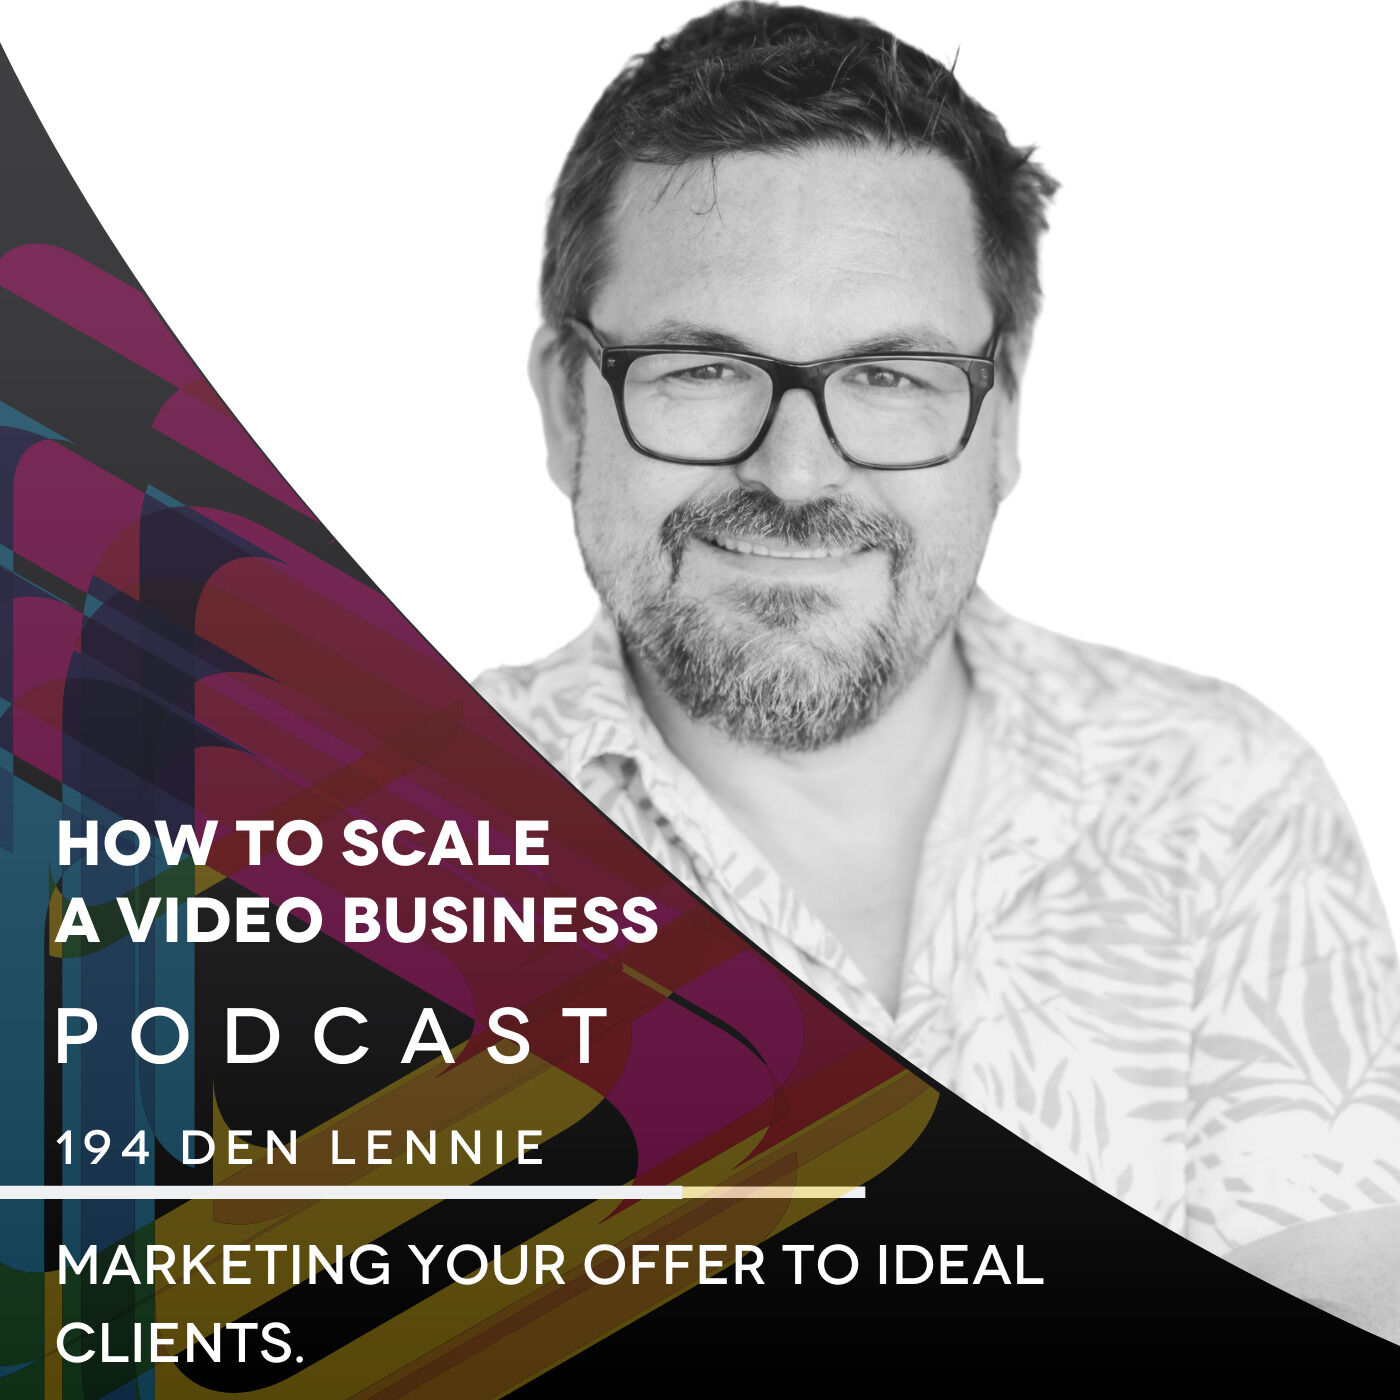 Marketing Your Offer To Ideal Clients. EP #194 - Den Lennie